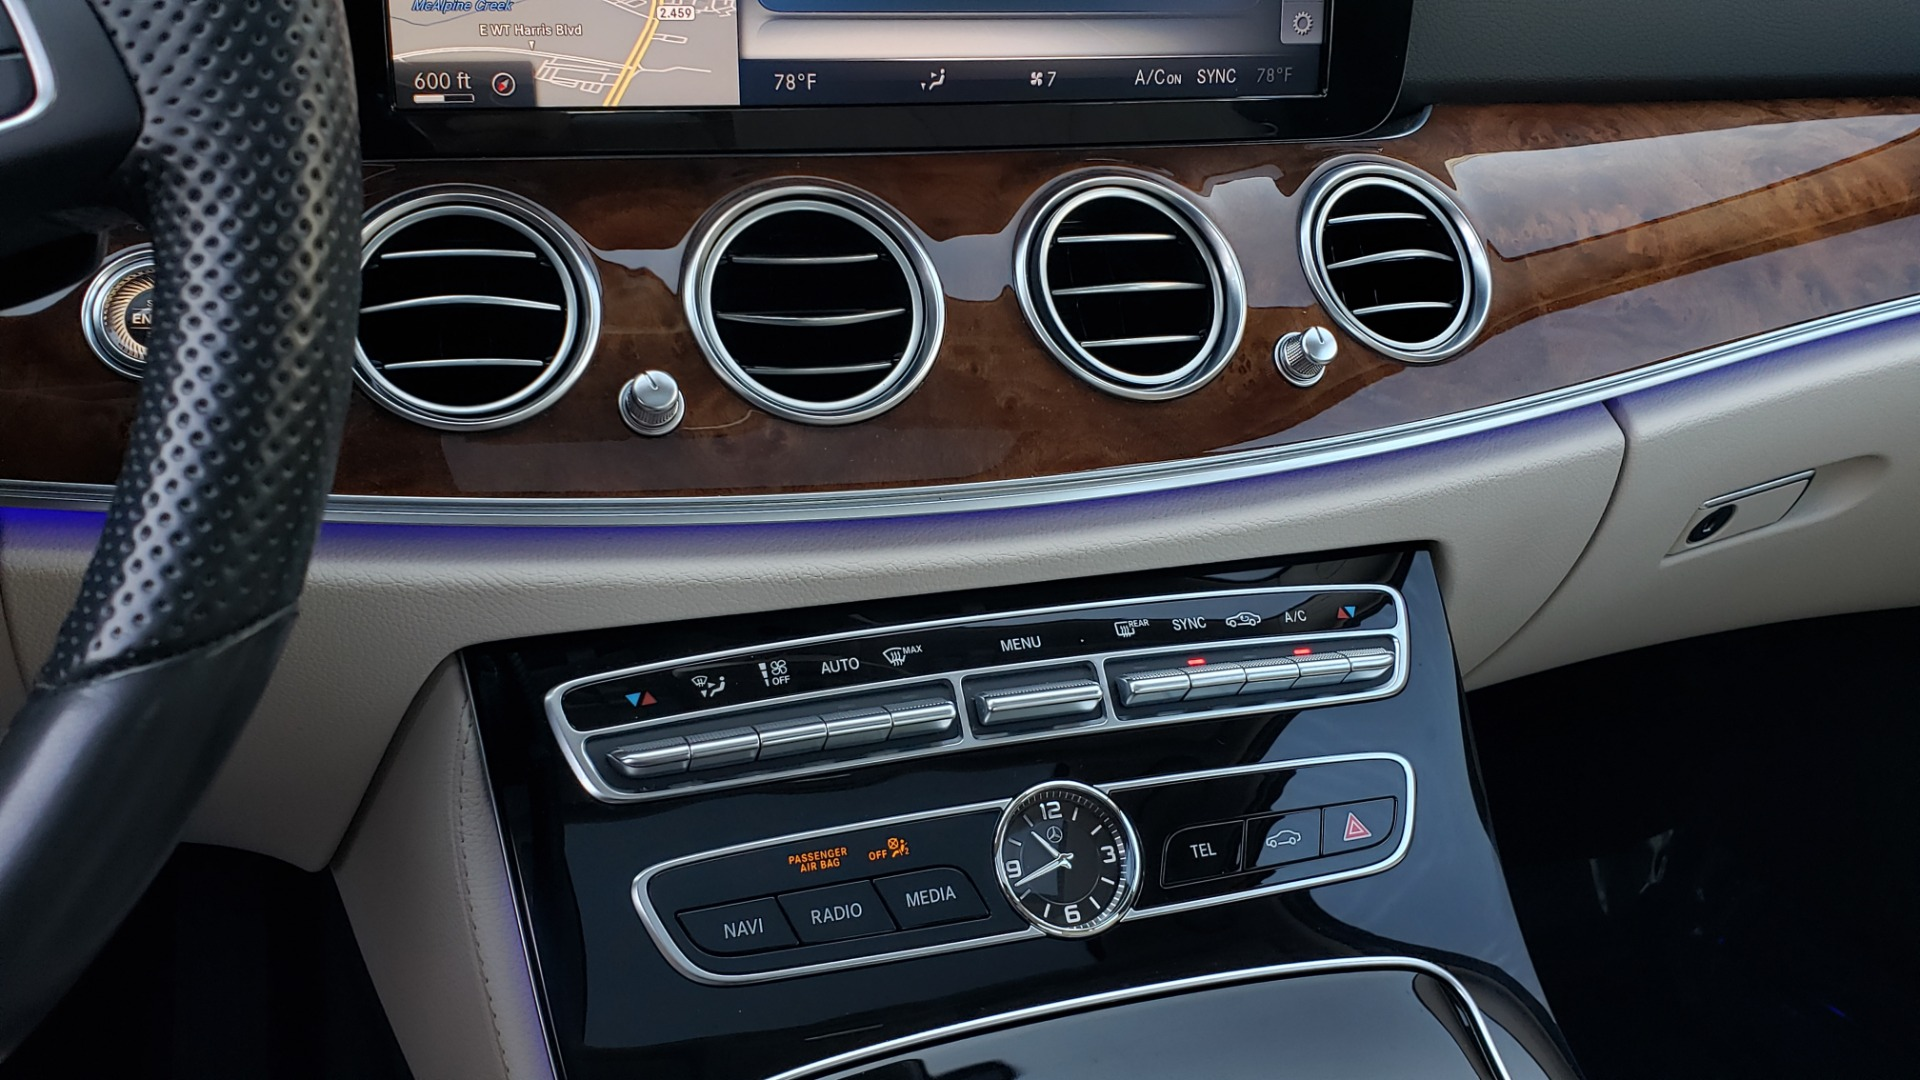 Used 2017 Mercedes-Benz E-Class E 300 PREMIUM / RWD / NAV / SNF / PARKING PILOT / REARVIEW / BURMESTER for sale Sold at Formula Imports in Charlotte NC 28227 42